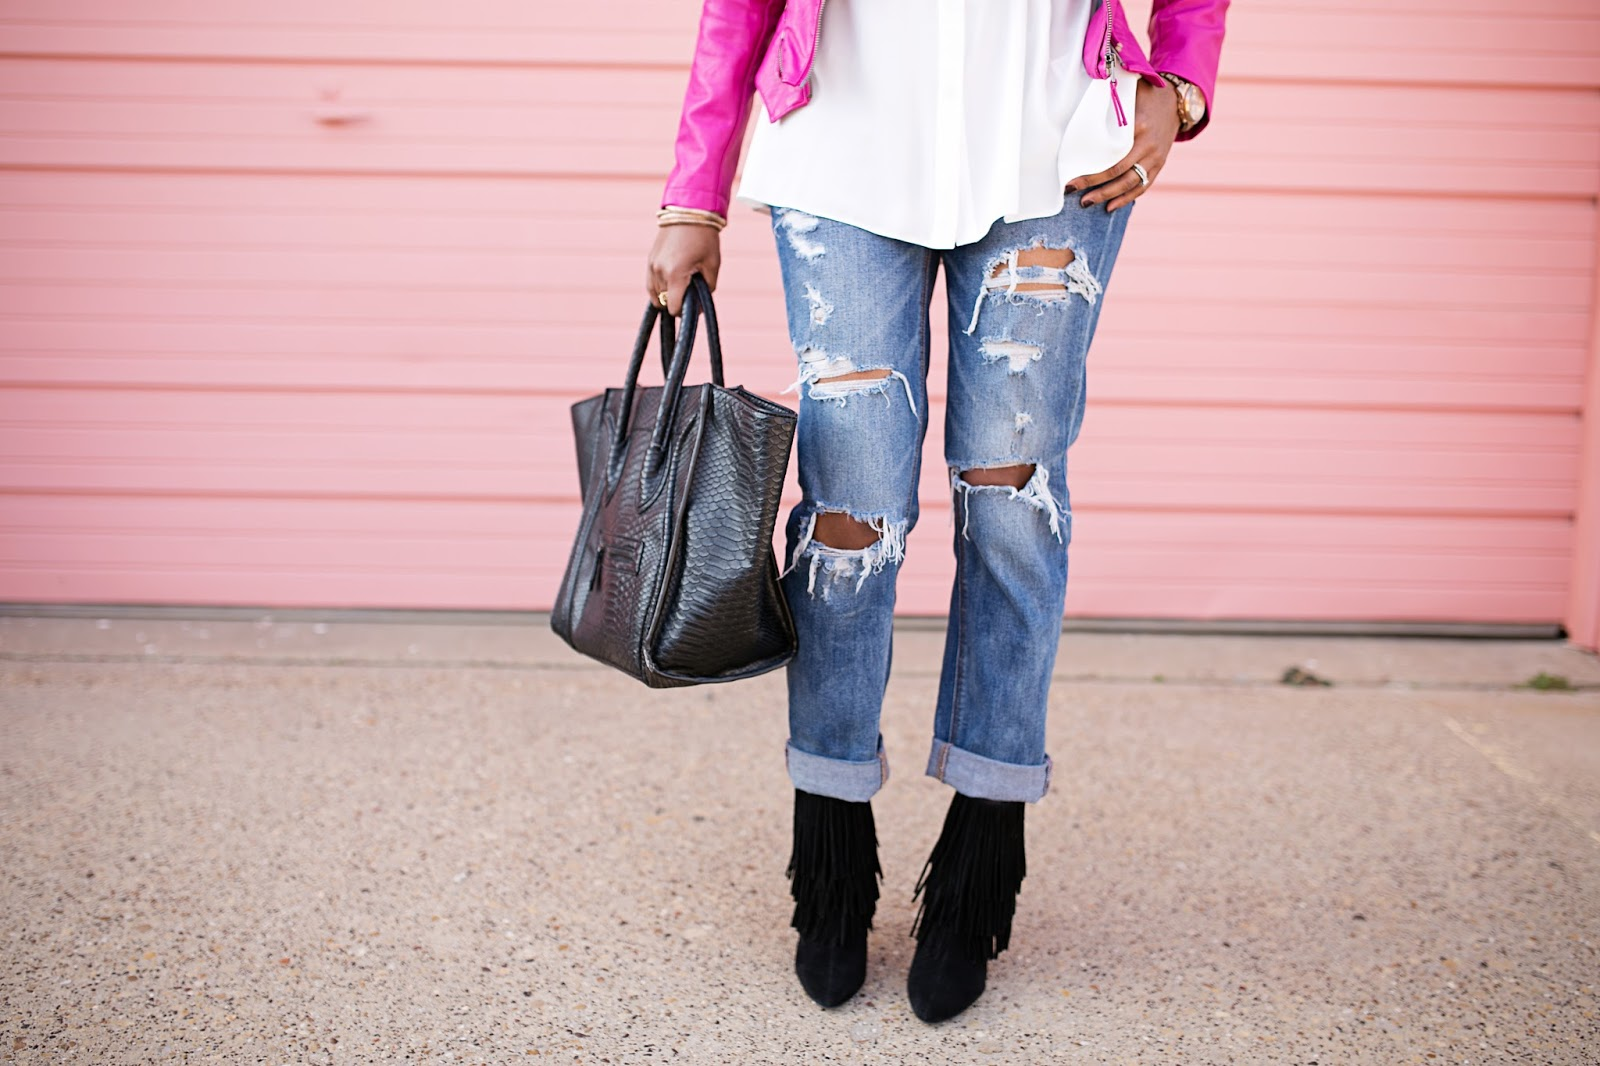 detroit vs everybody t-shirt- american eagle boyfriend jeans- american eagle tom girl jeans- zara fringe booties- justfab look for less celine- pink leather moto jacket- laws of layering-dallas fashion blogger- detroit fashion blogger, valentines date night outfit